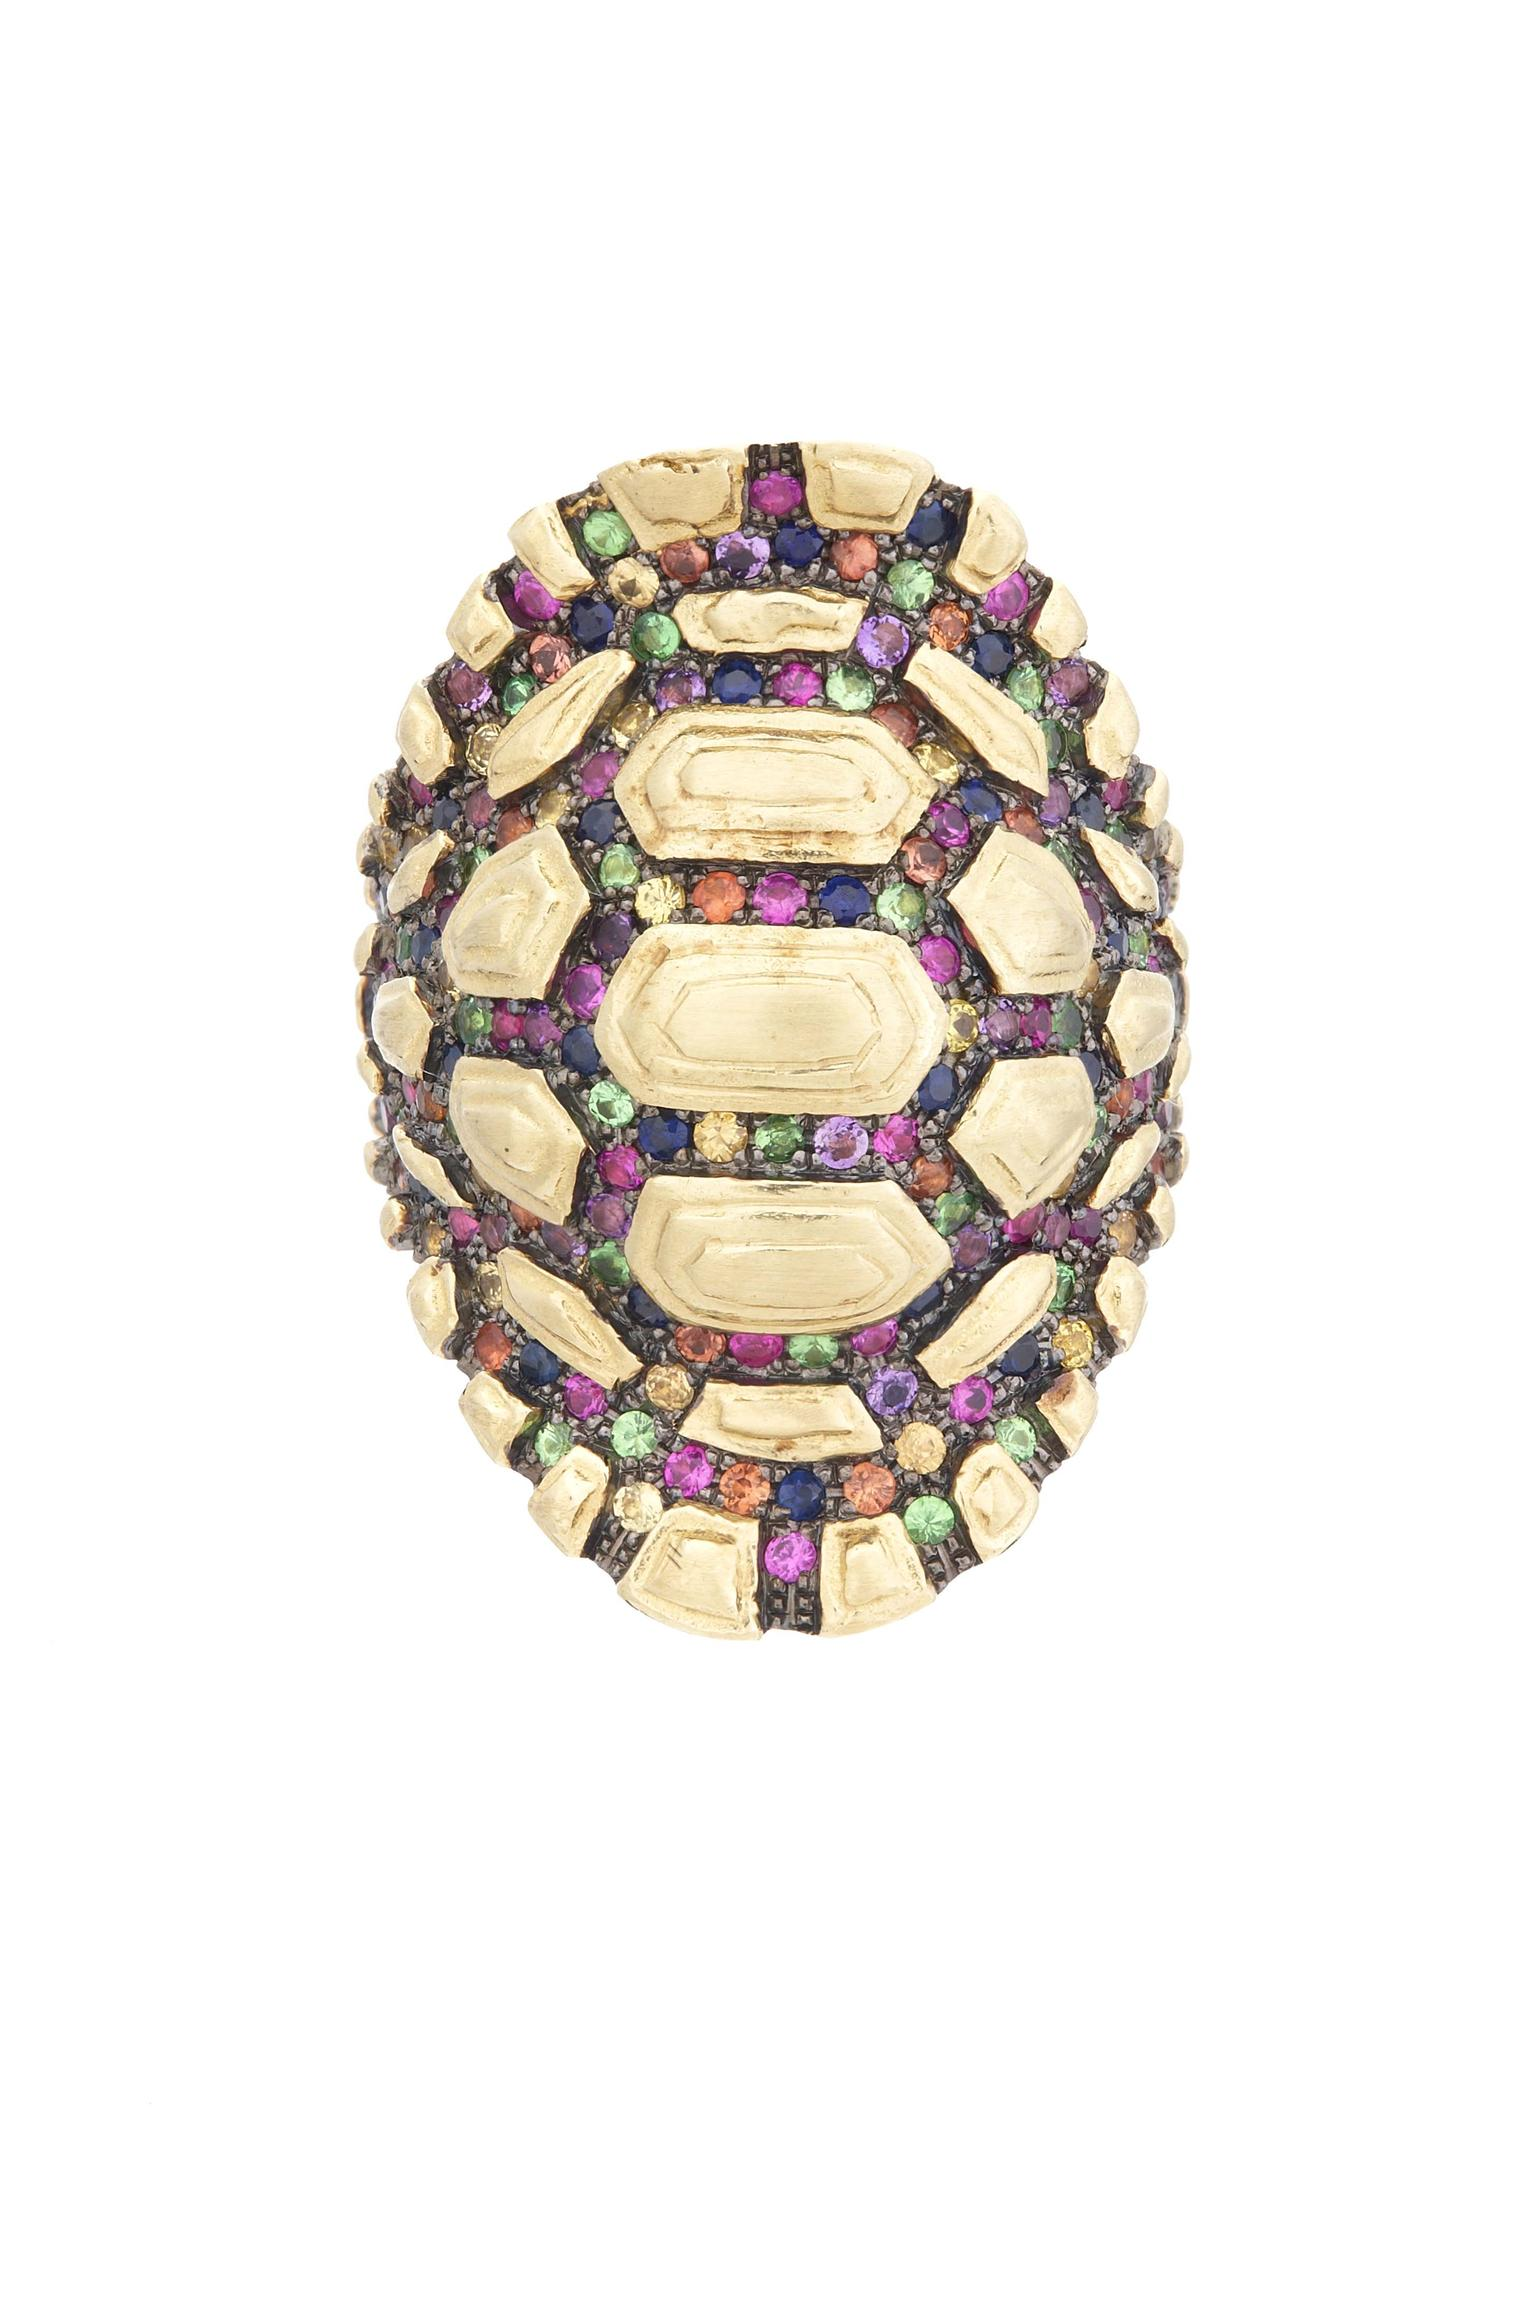 Venyx Reptilia Tartaruga Rainbow Madagascar ring in yellow gold with multi-coloured gemstones.